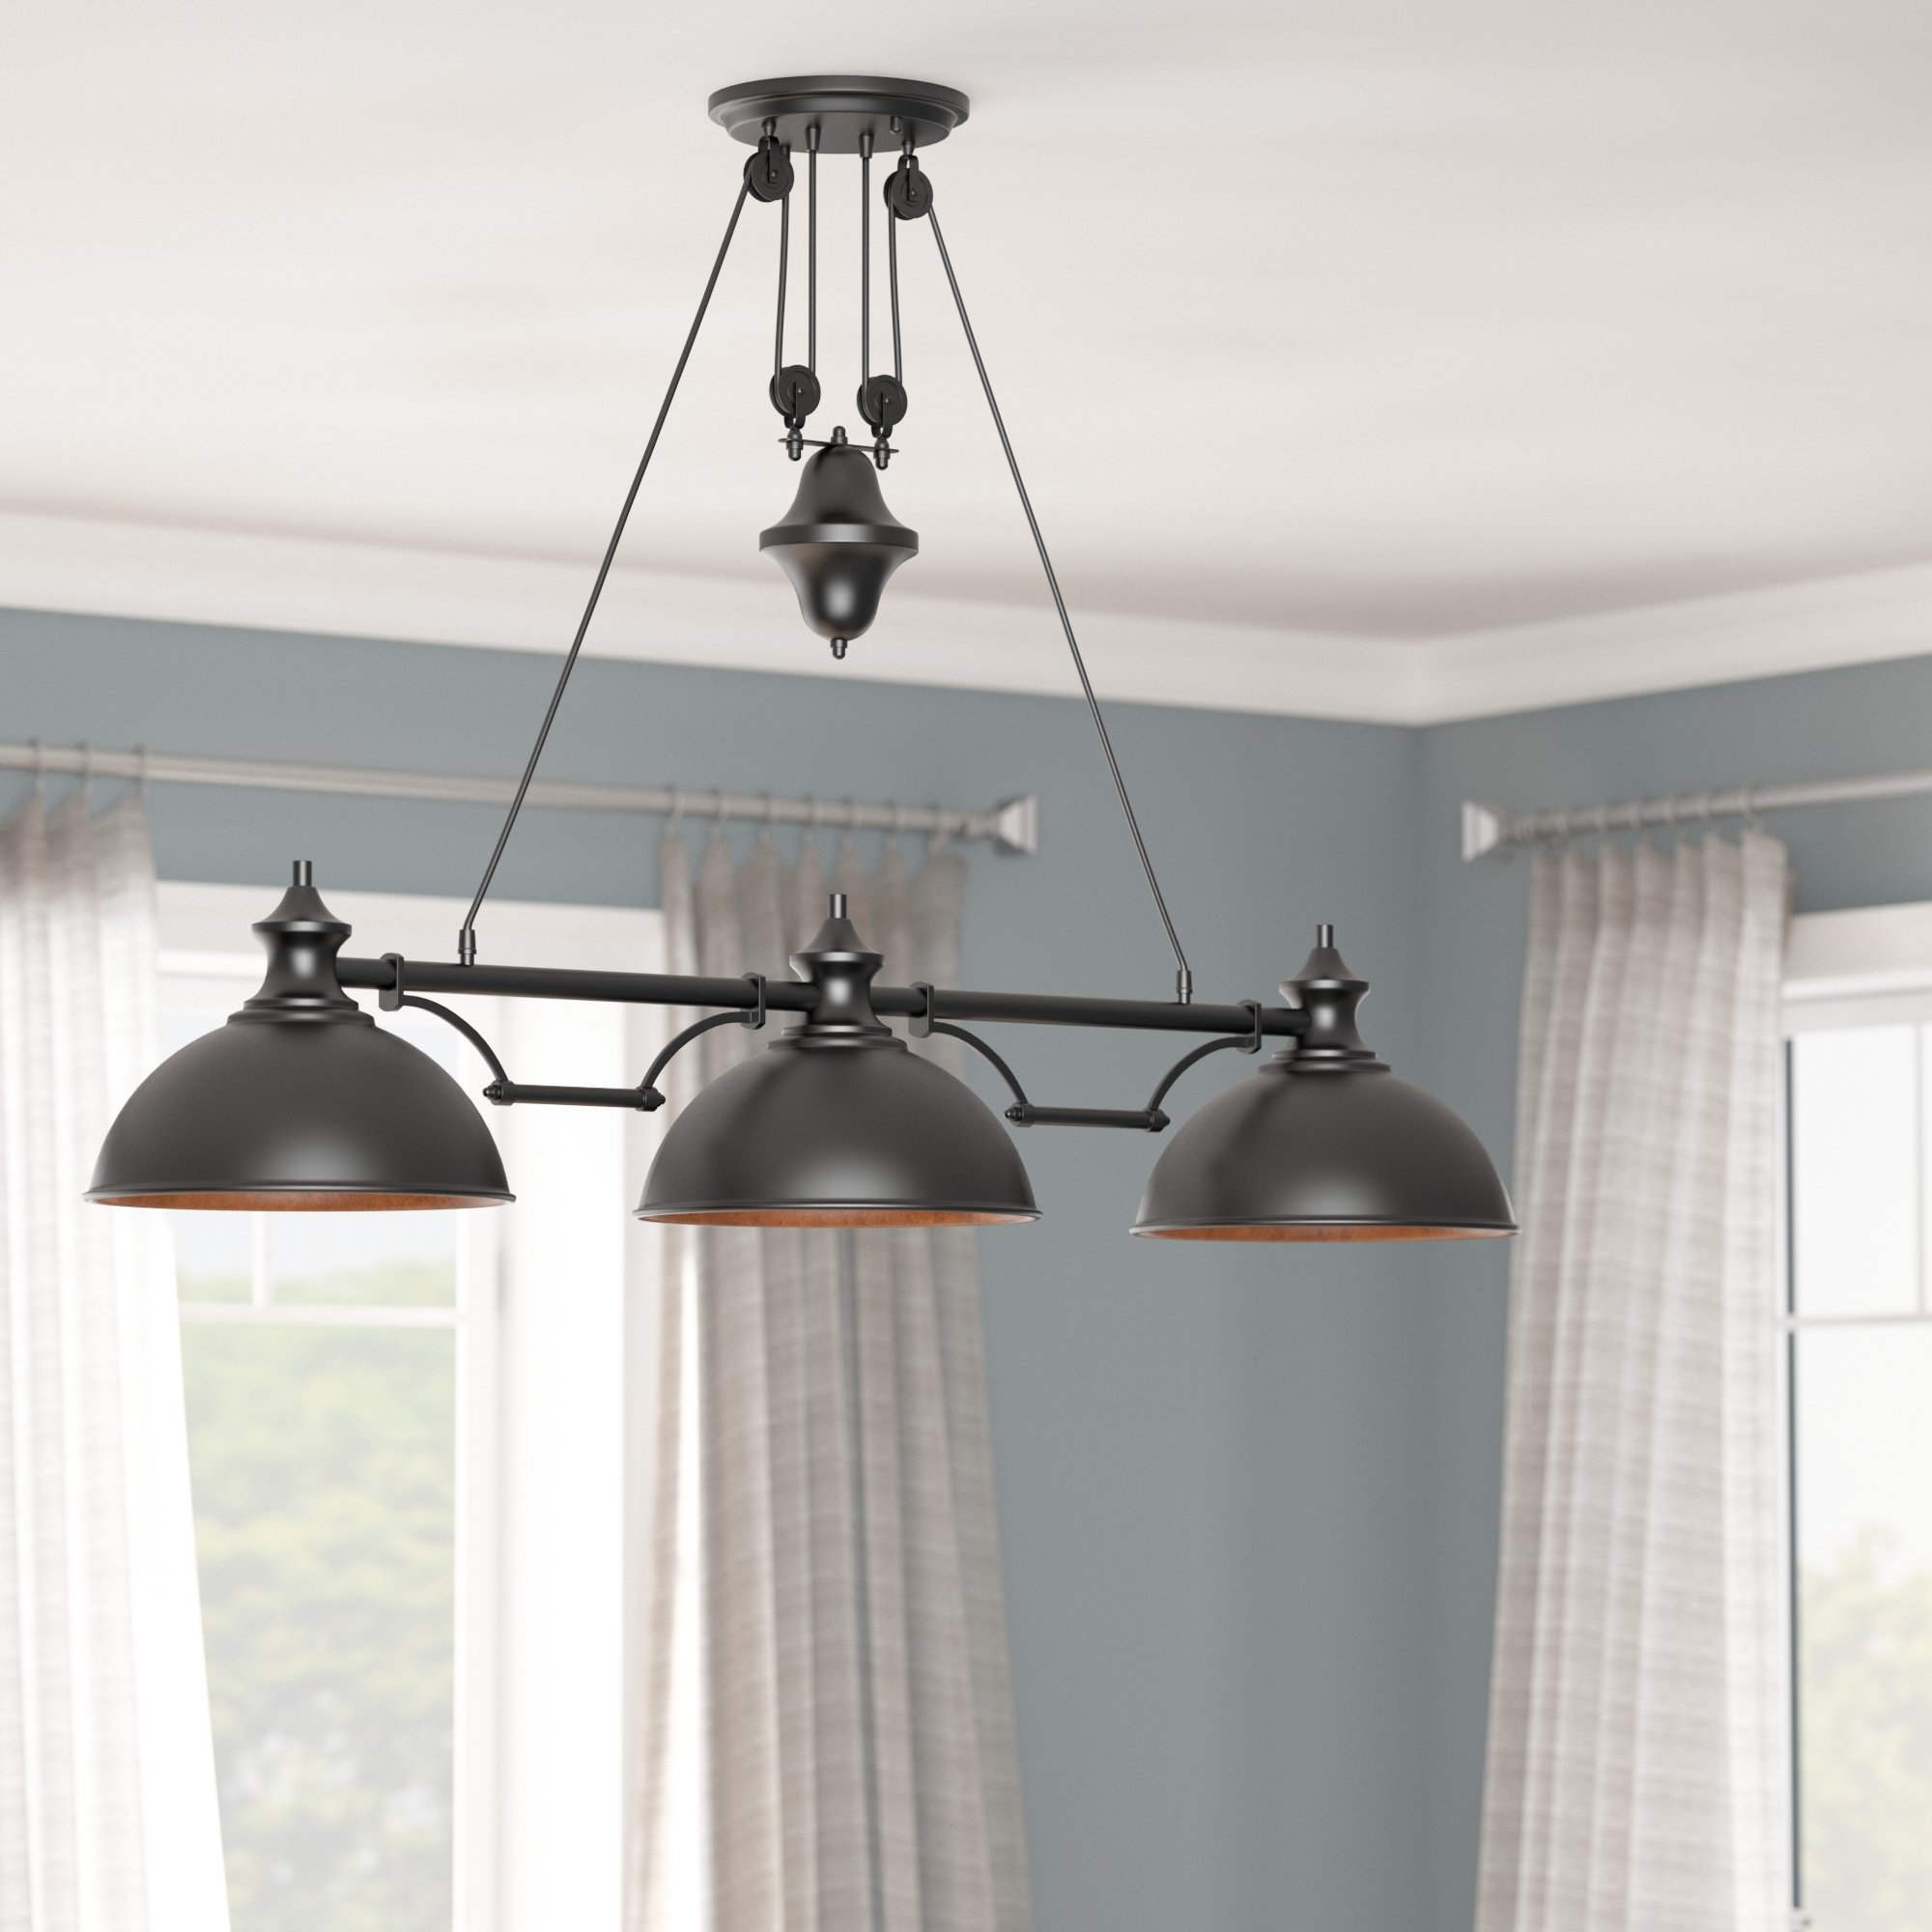 Rodriques 3 Light Kitchen Island Pendant With Regard To Well Liked Ariel 2 Light Kitchen Island Dome Pendants (View 9 of 25)